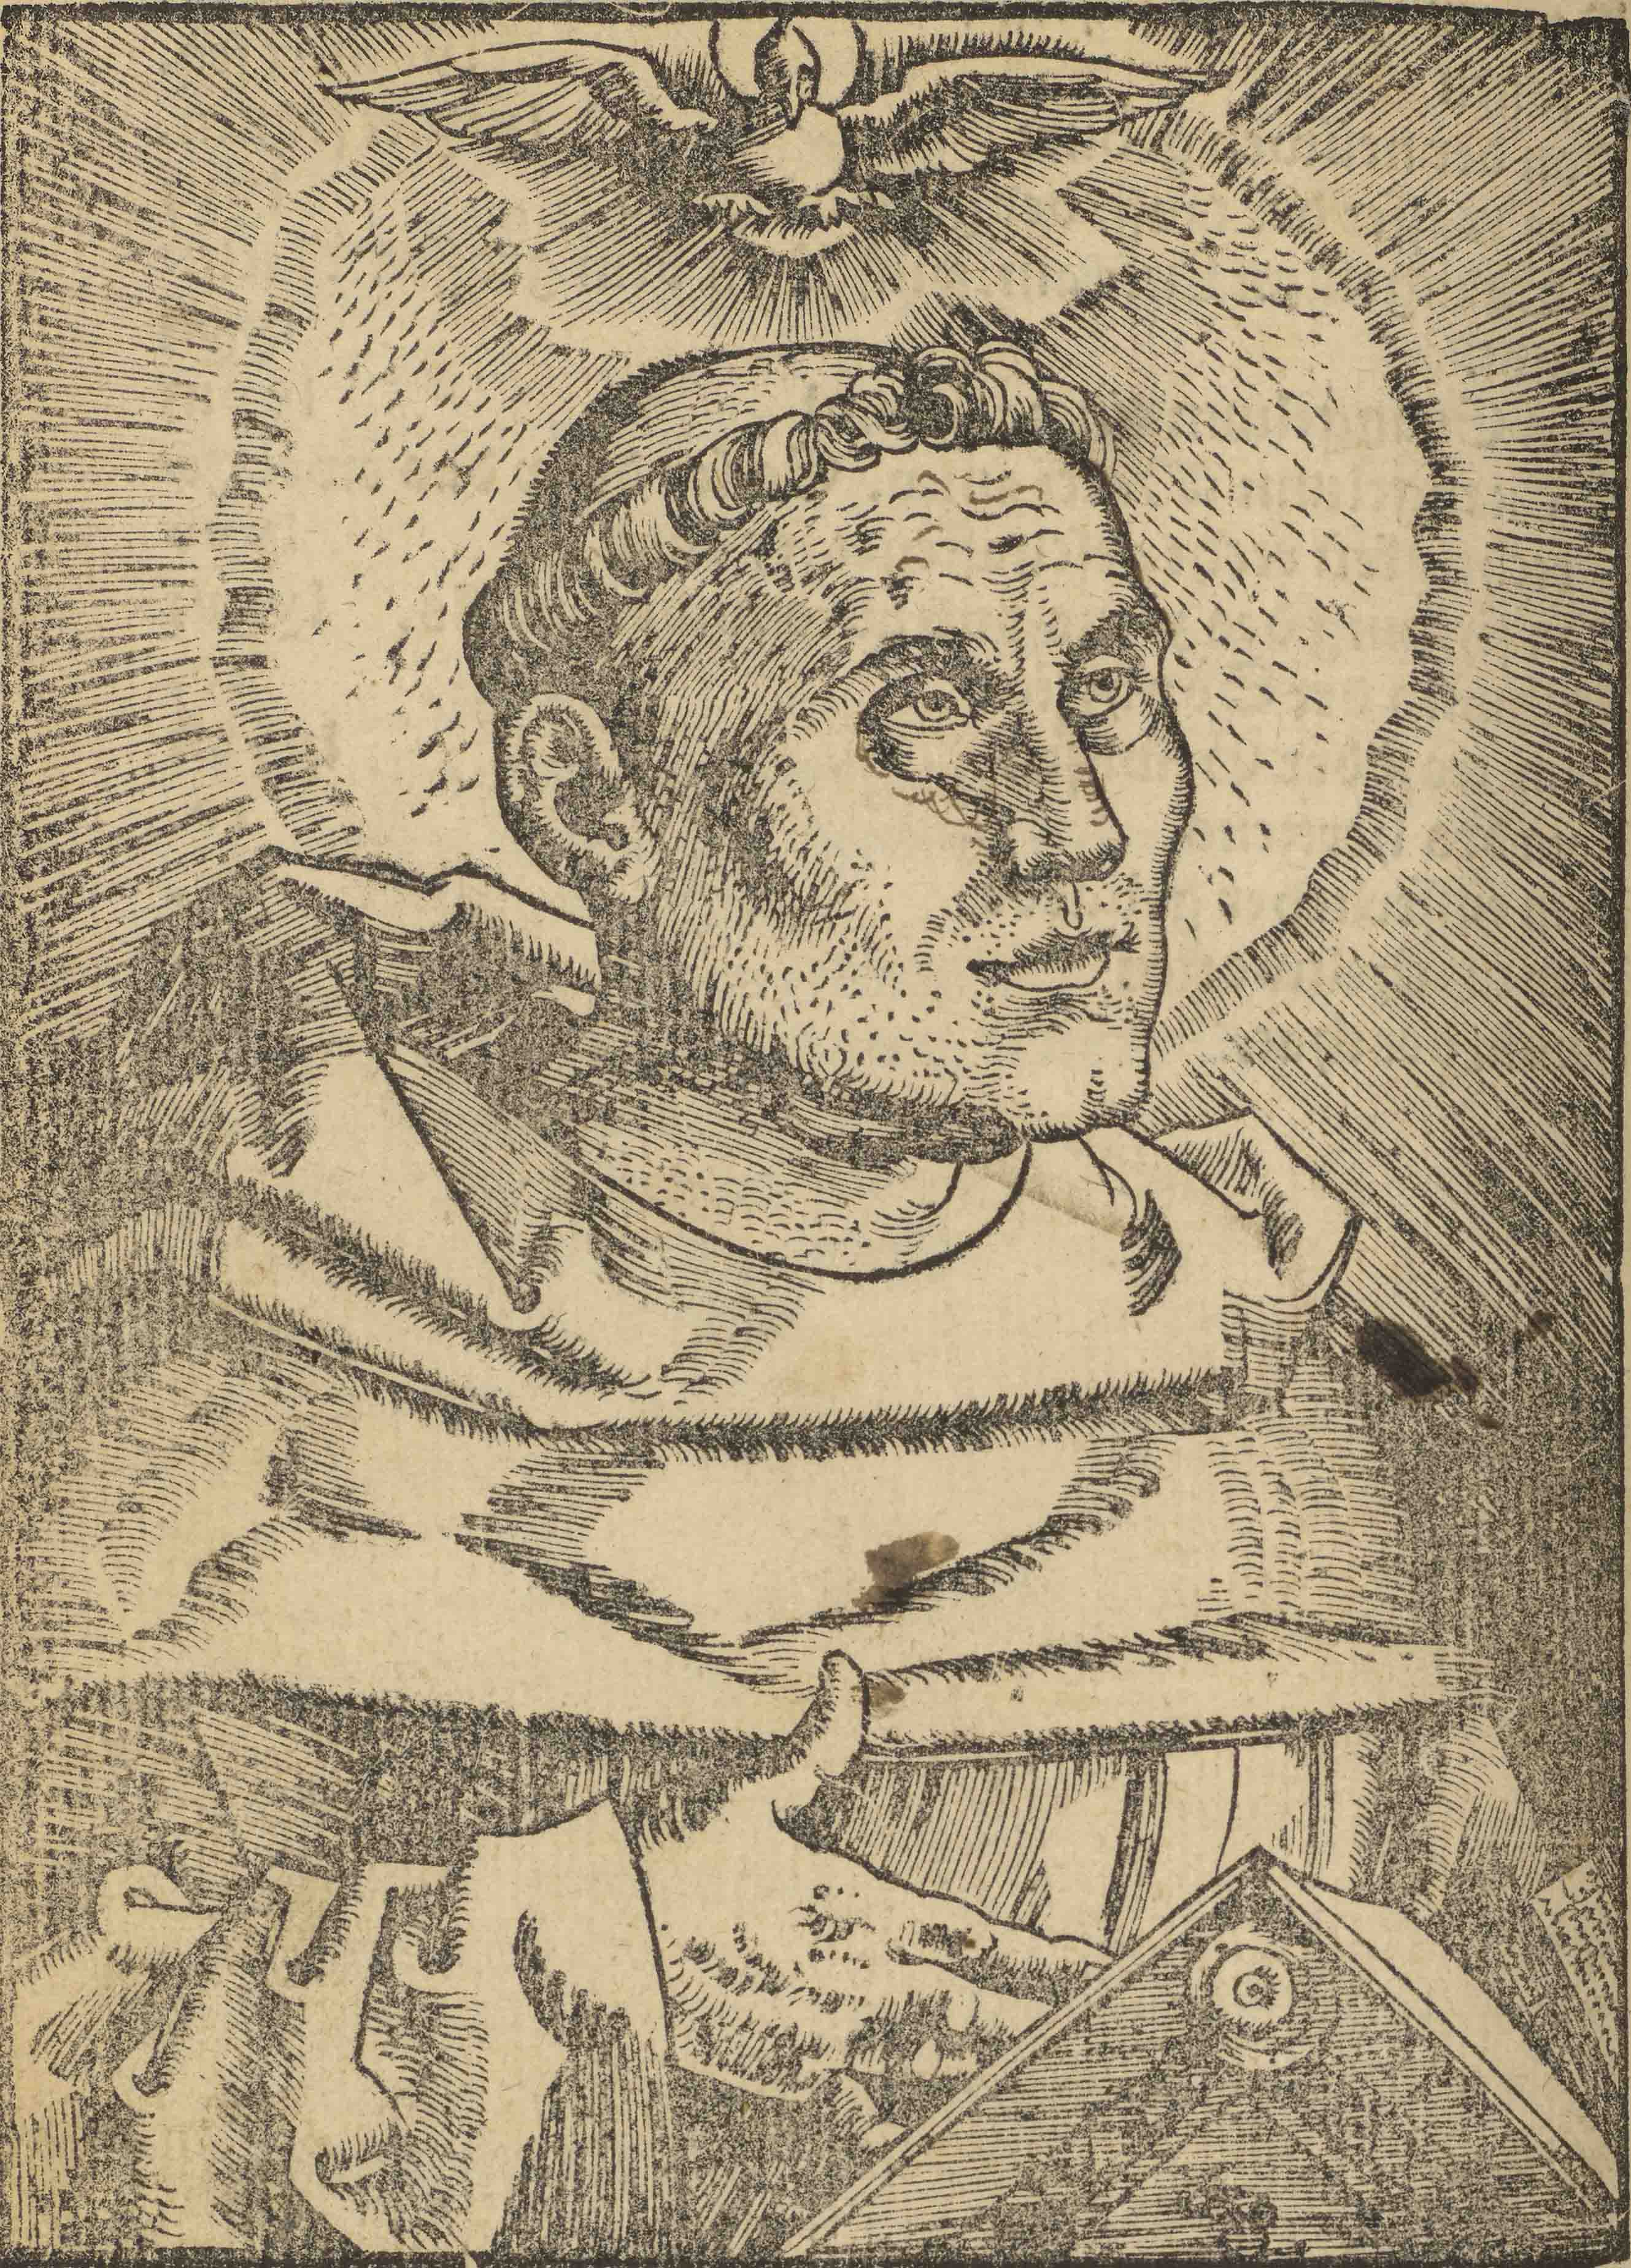 Image of monk